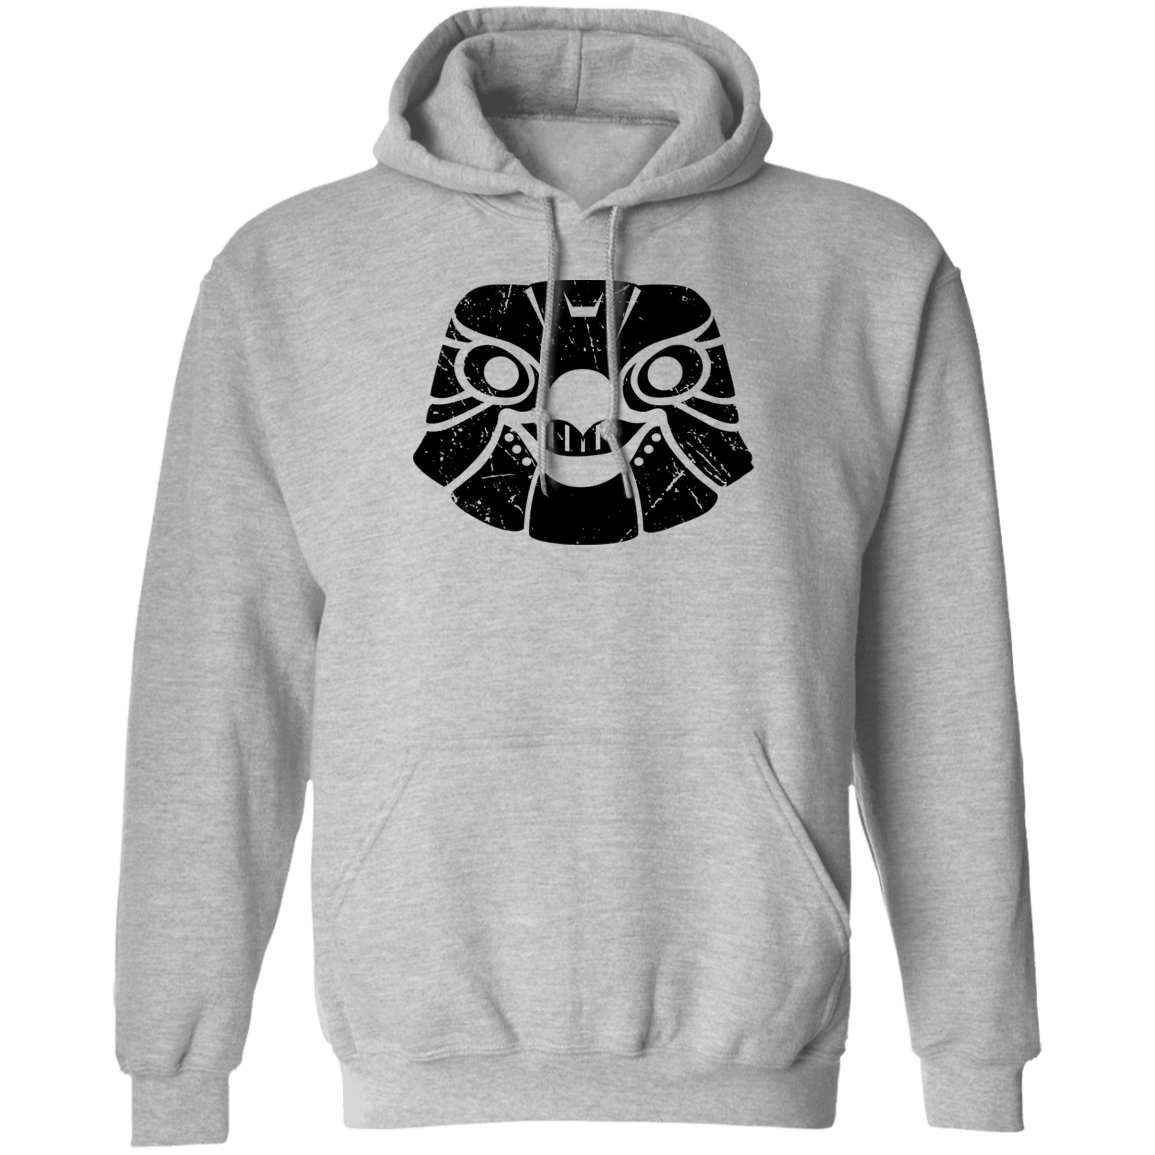 Black Distressed Emblem Hoodies for Adults (Falcon/Swift)